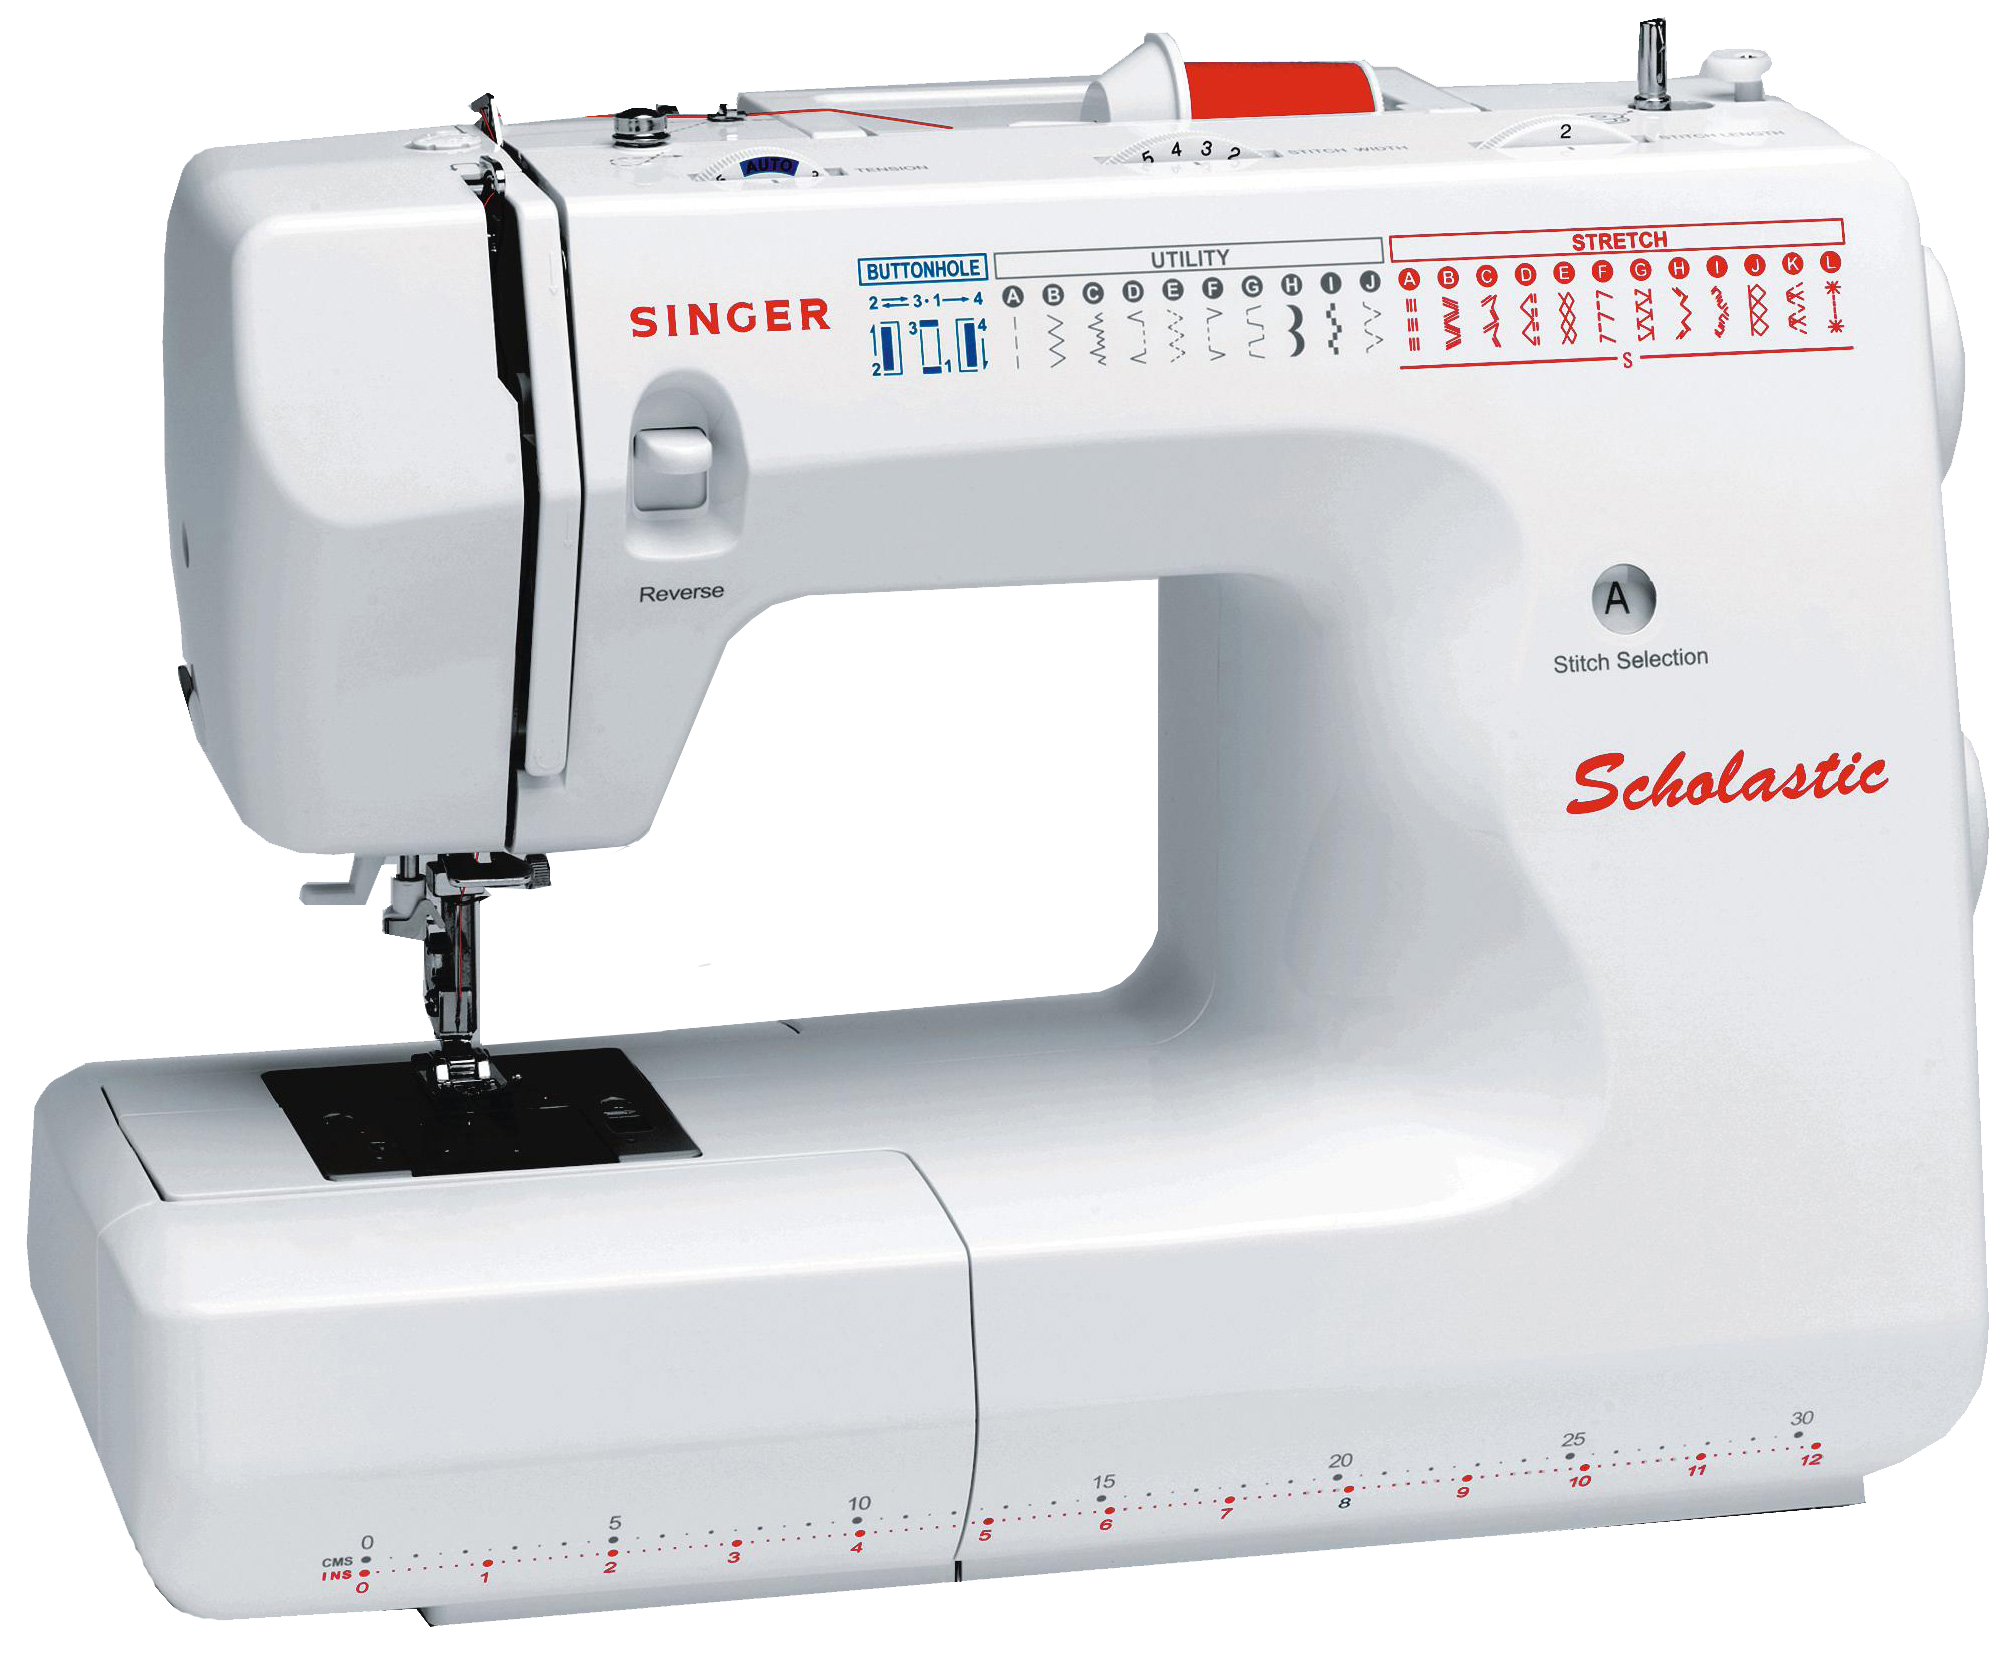 Brother Sewing and Quilting Machine, CSi, 60 Built-In Stitches, 7 styles of 1-Step Auto-Size Buttonholes, Wide Table, Hard Cover, LCD Display and Auto Needle Threader.